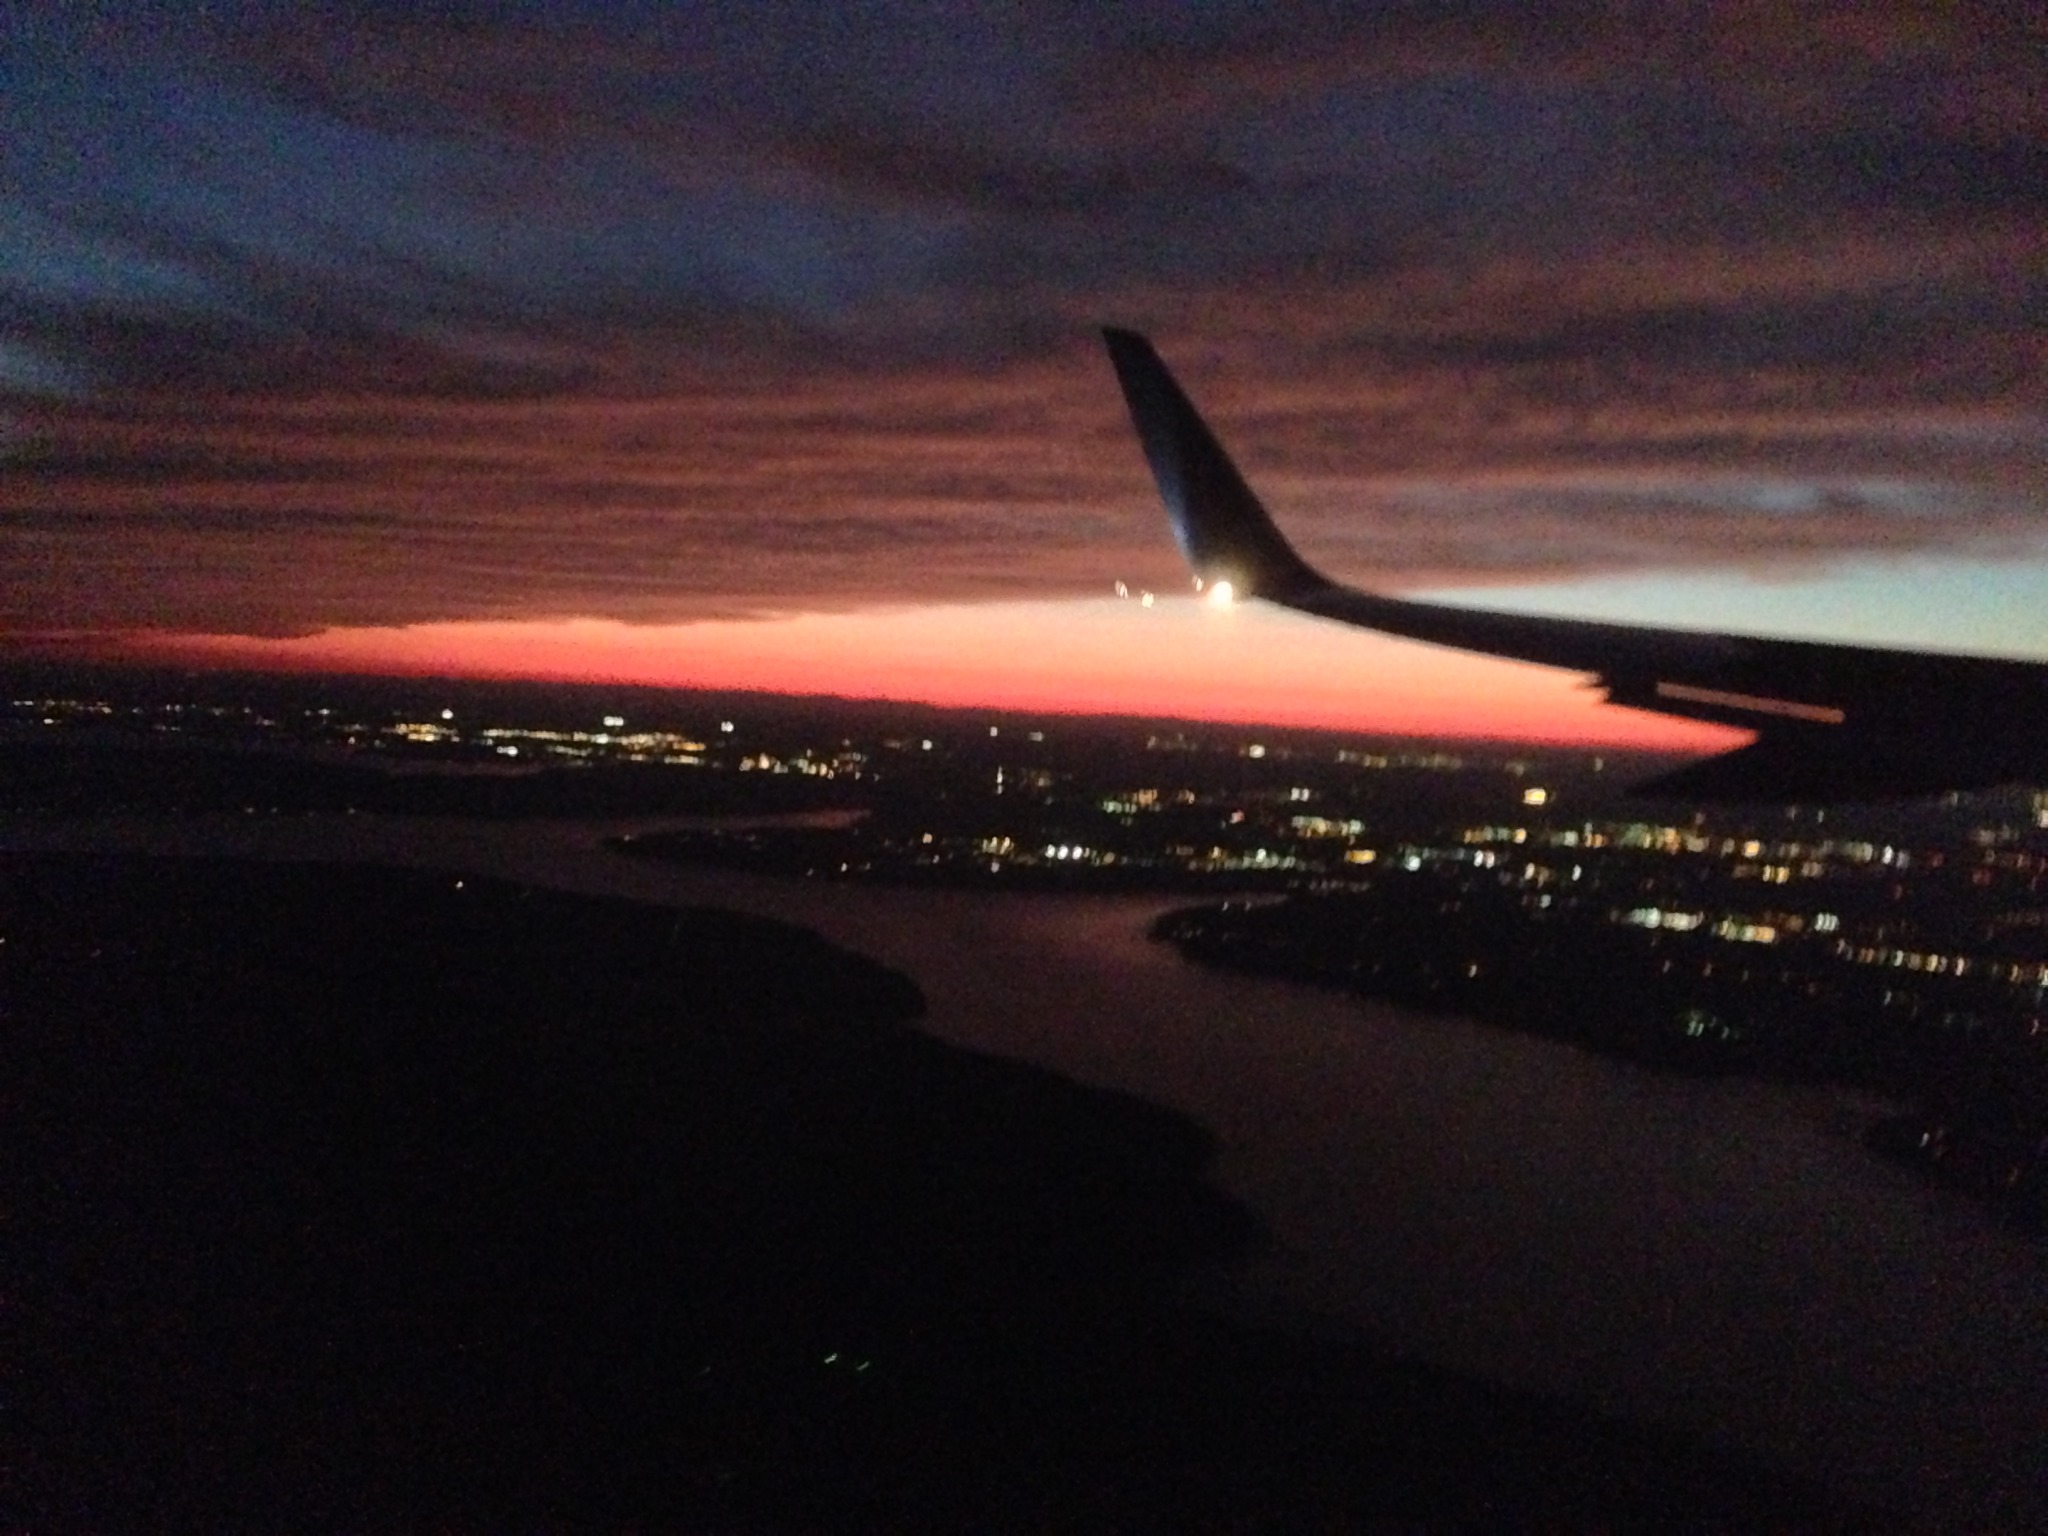 The flight returning to Reagan, national Airport, from New Orleans